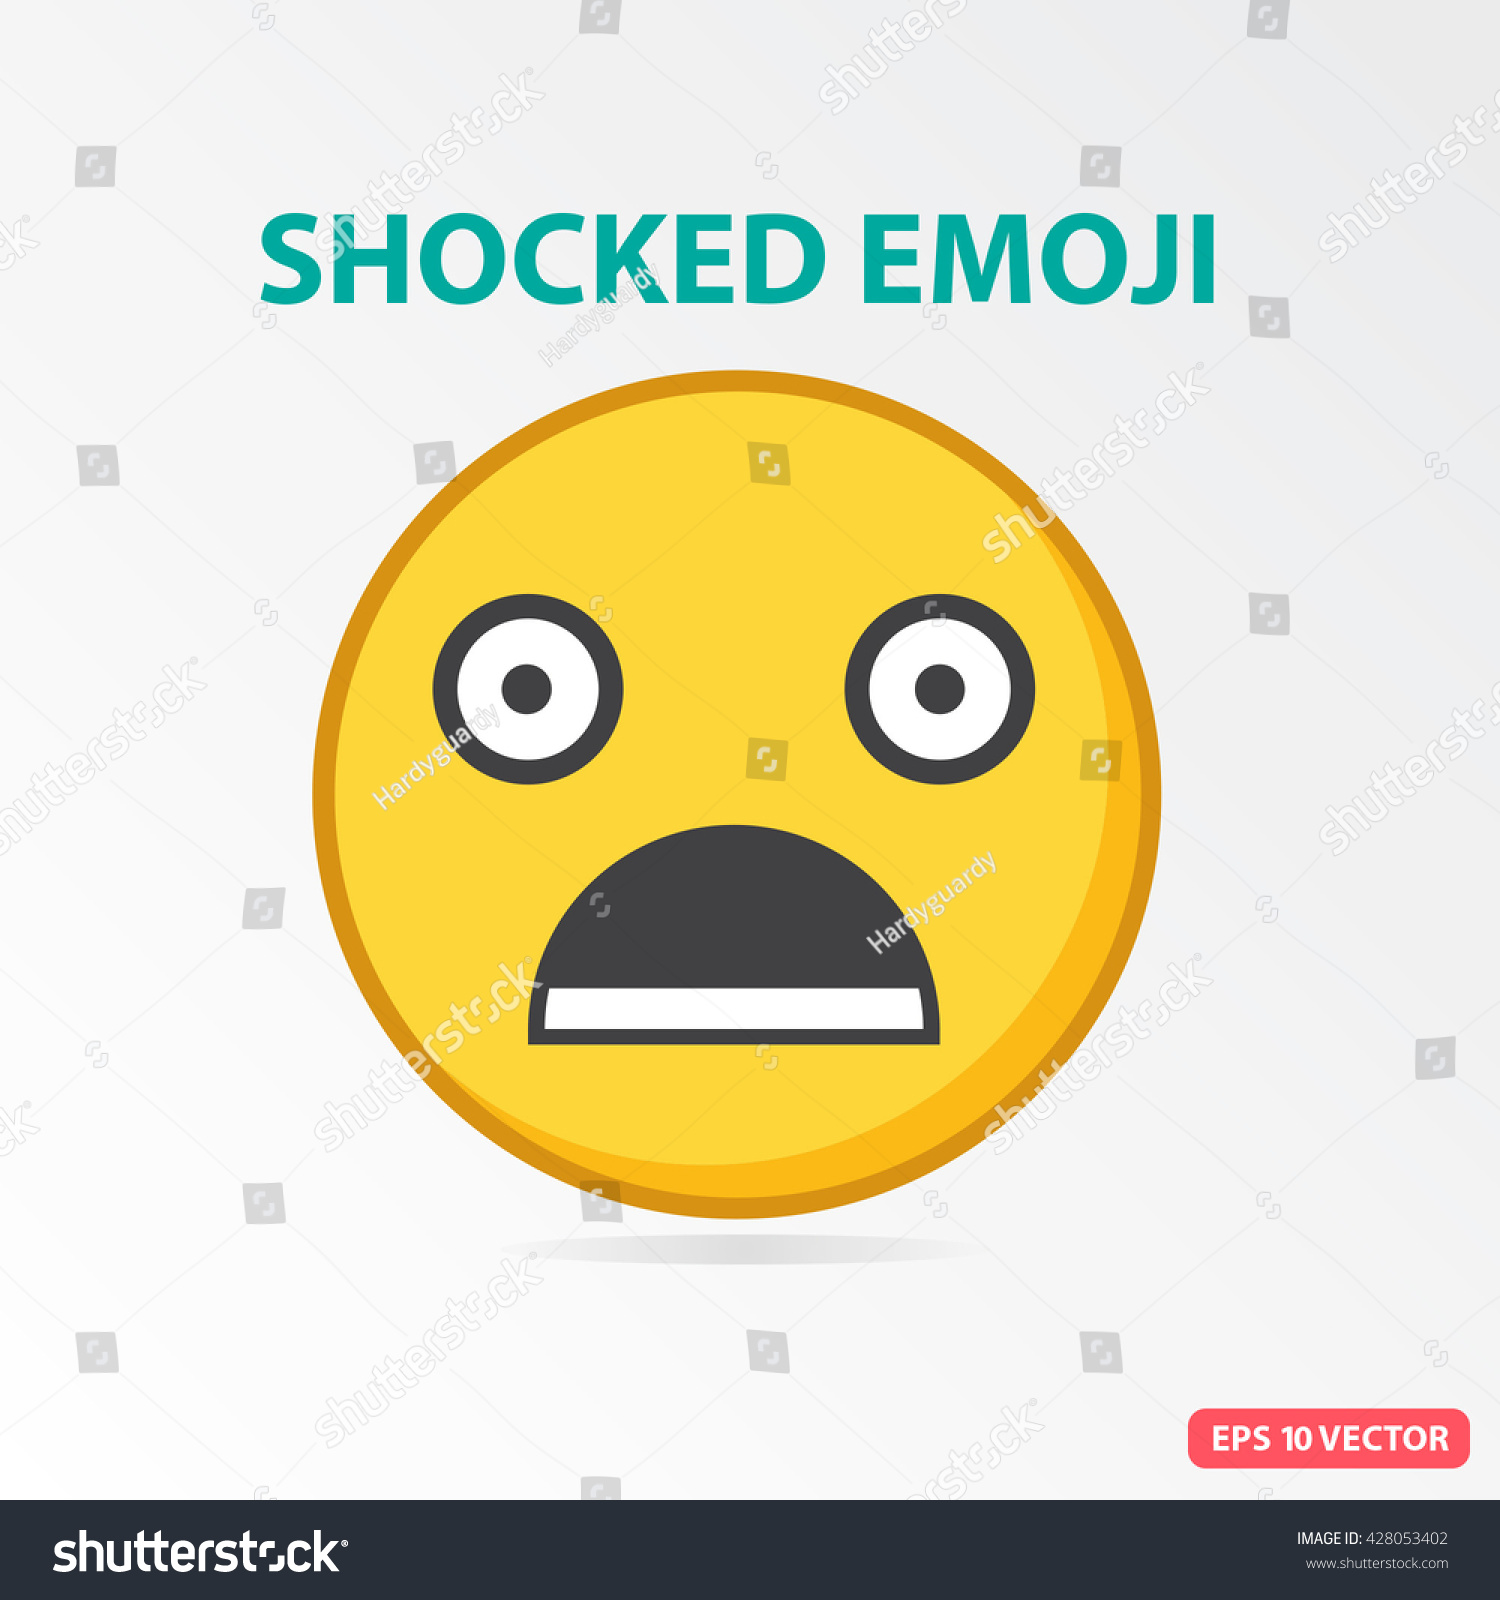 S Ingle Shocked Emoji Isolated Vector Illustration Vector de ...